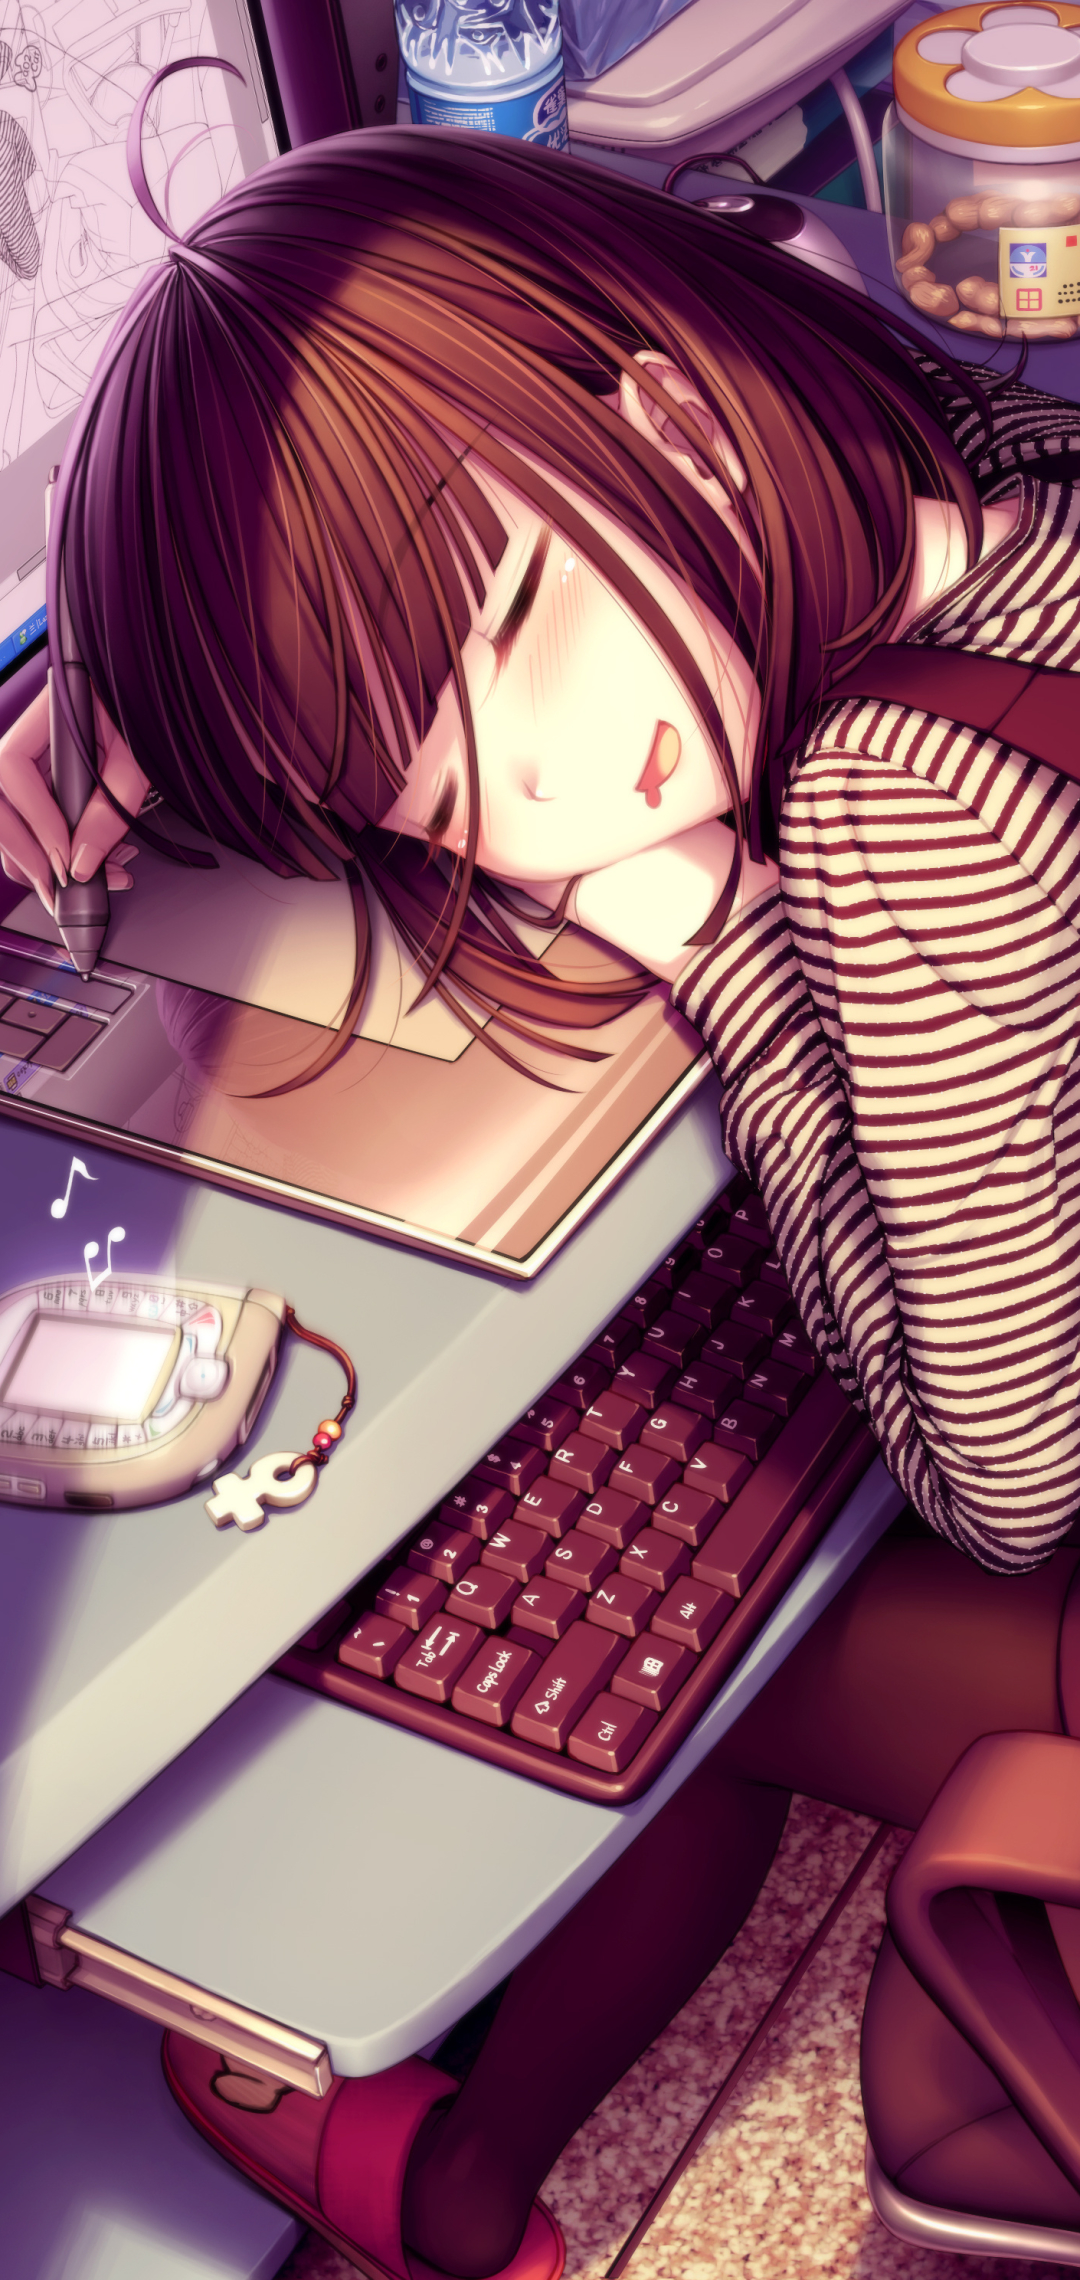 Anime Girl 1080x2280 Wallpaper Id 771045 Mobile Abyss